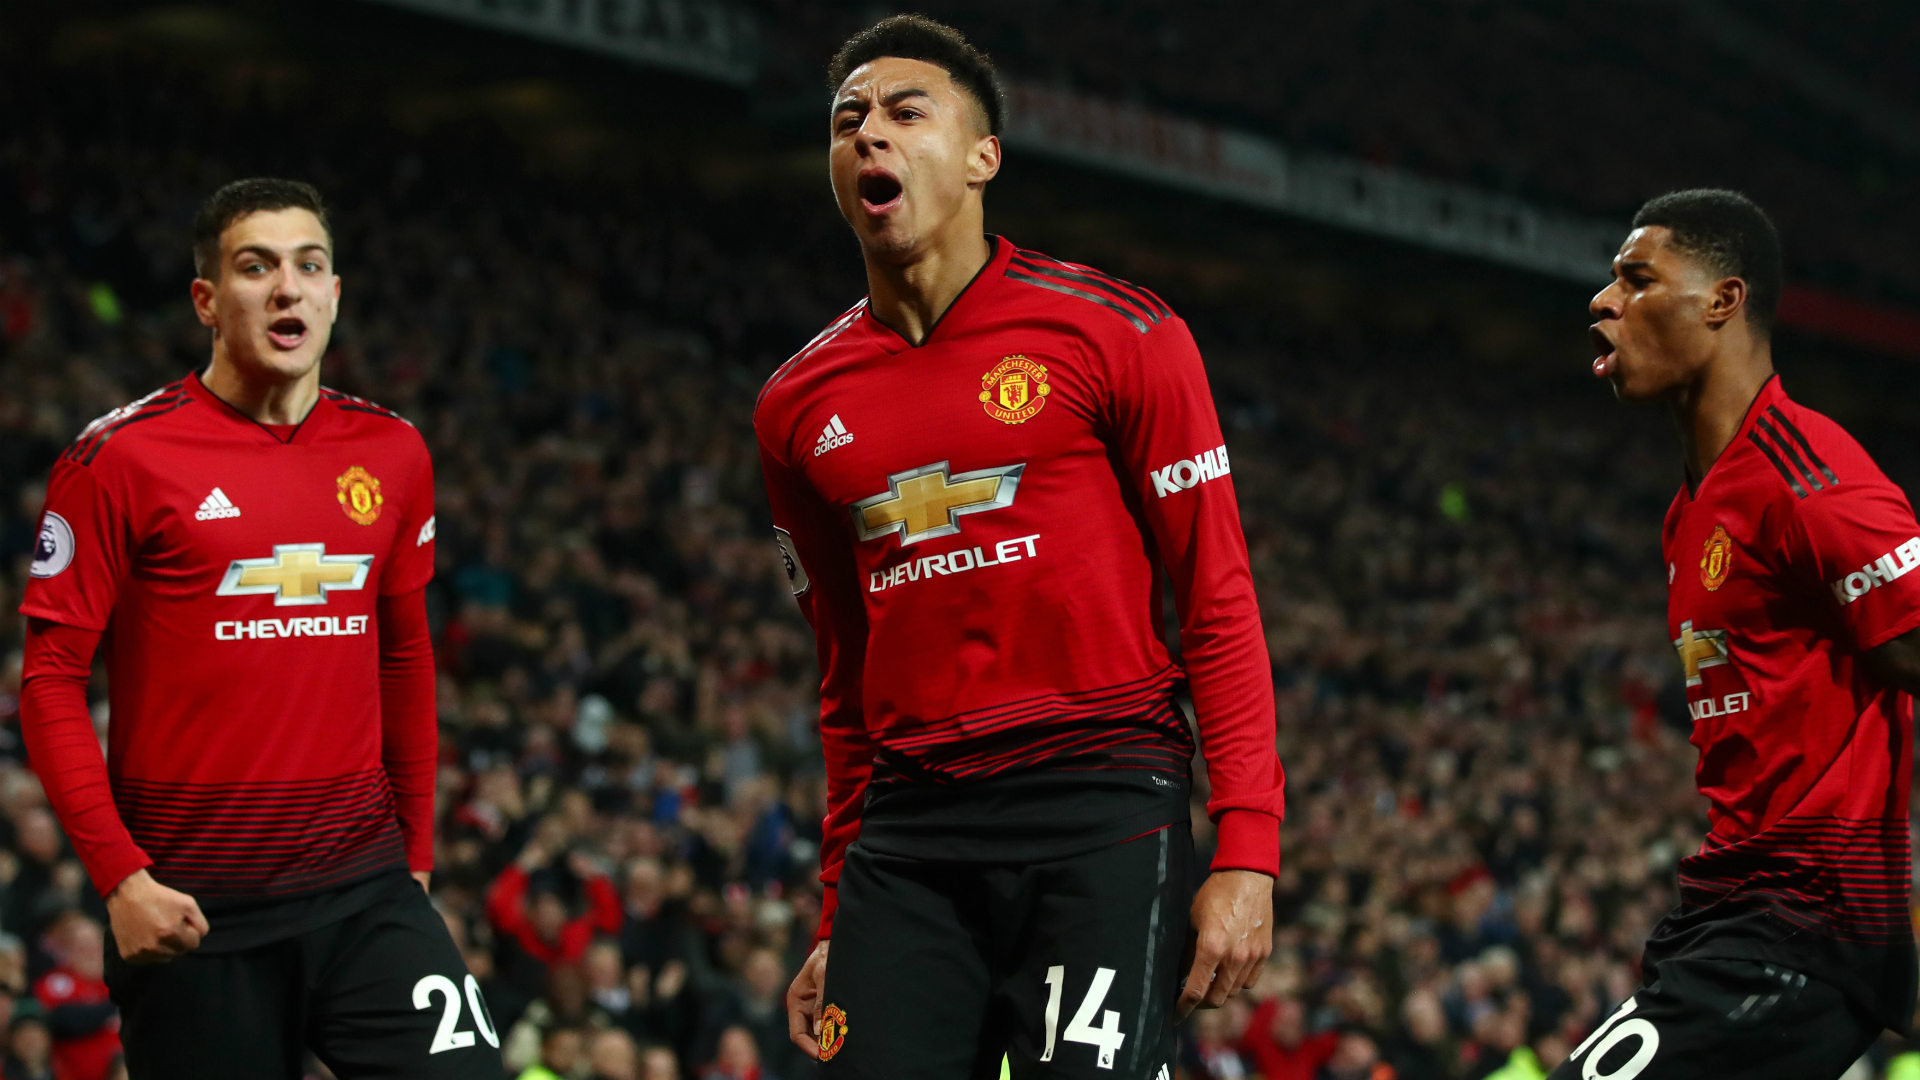 Jose Mourinho has cut a frustrated figure and cast doubt over Manchester United's top-four hopes but Jesse Lingard remains positive.